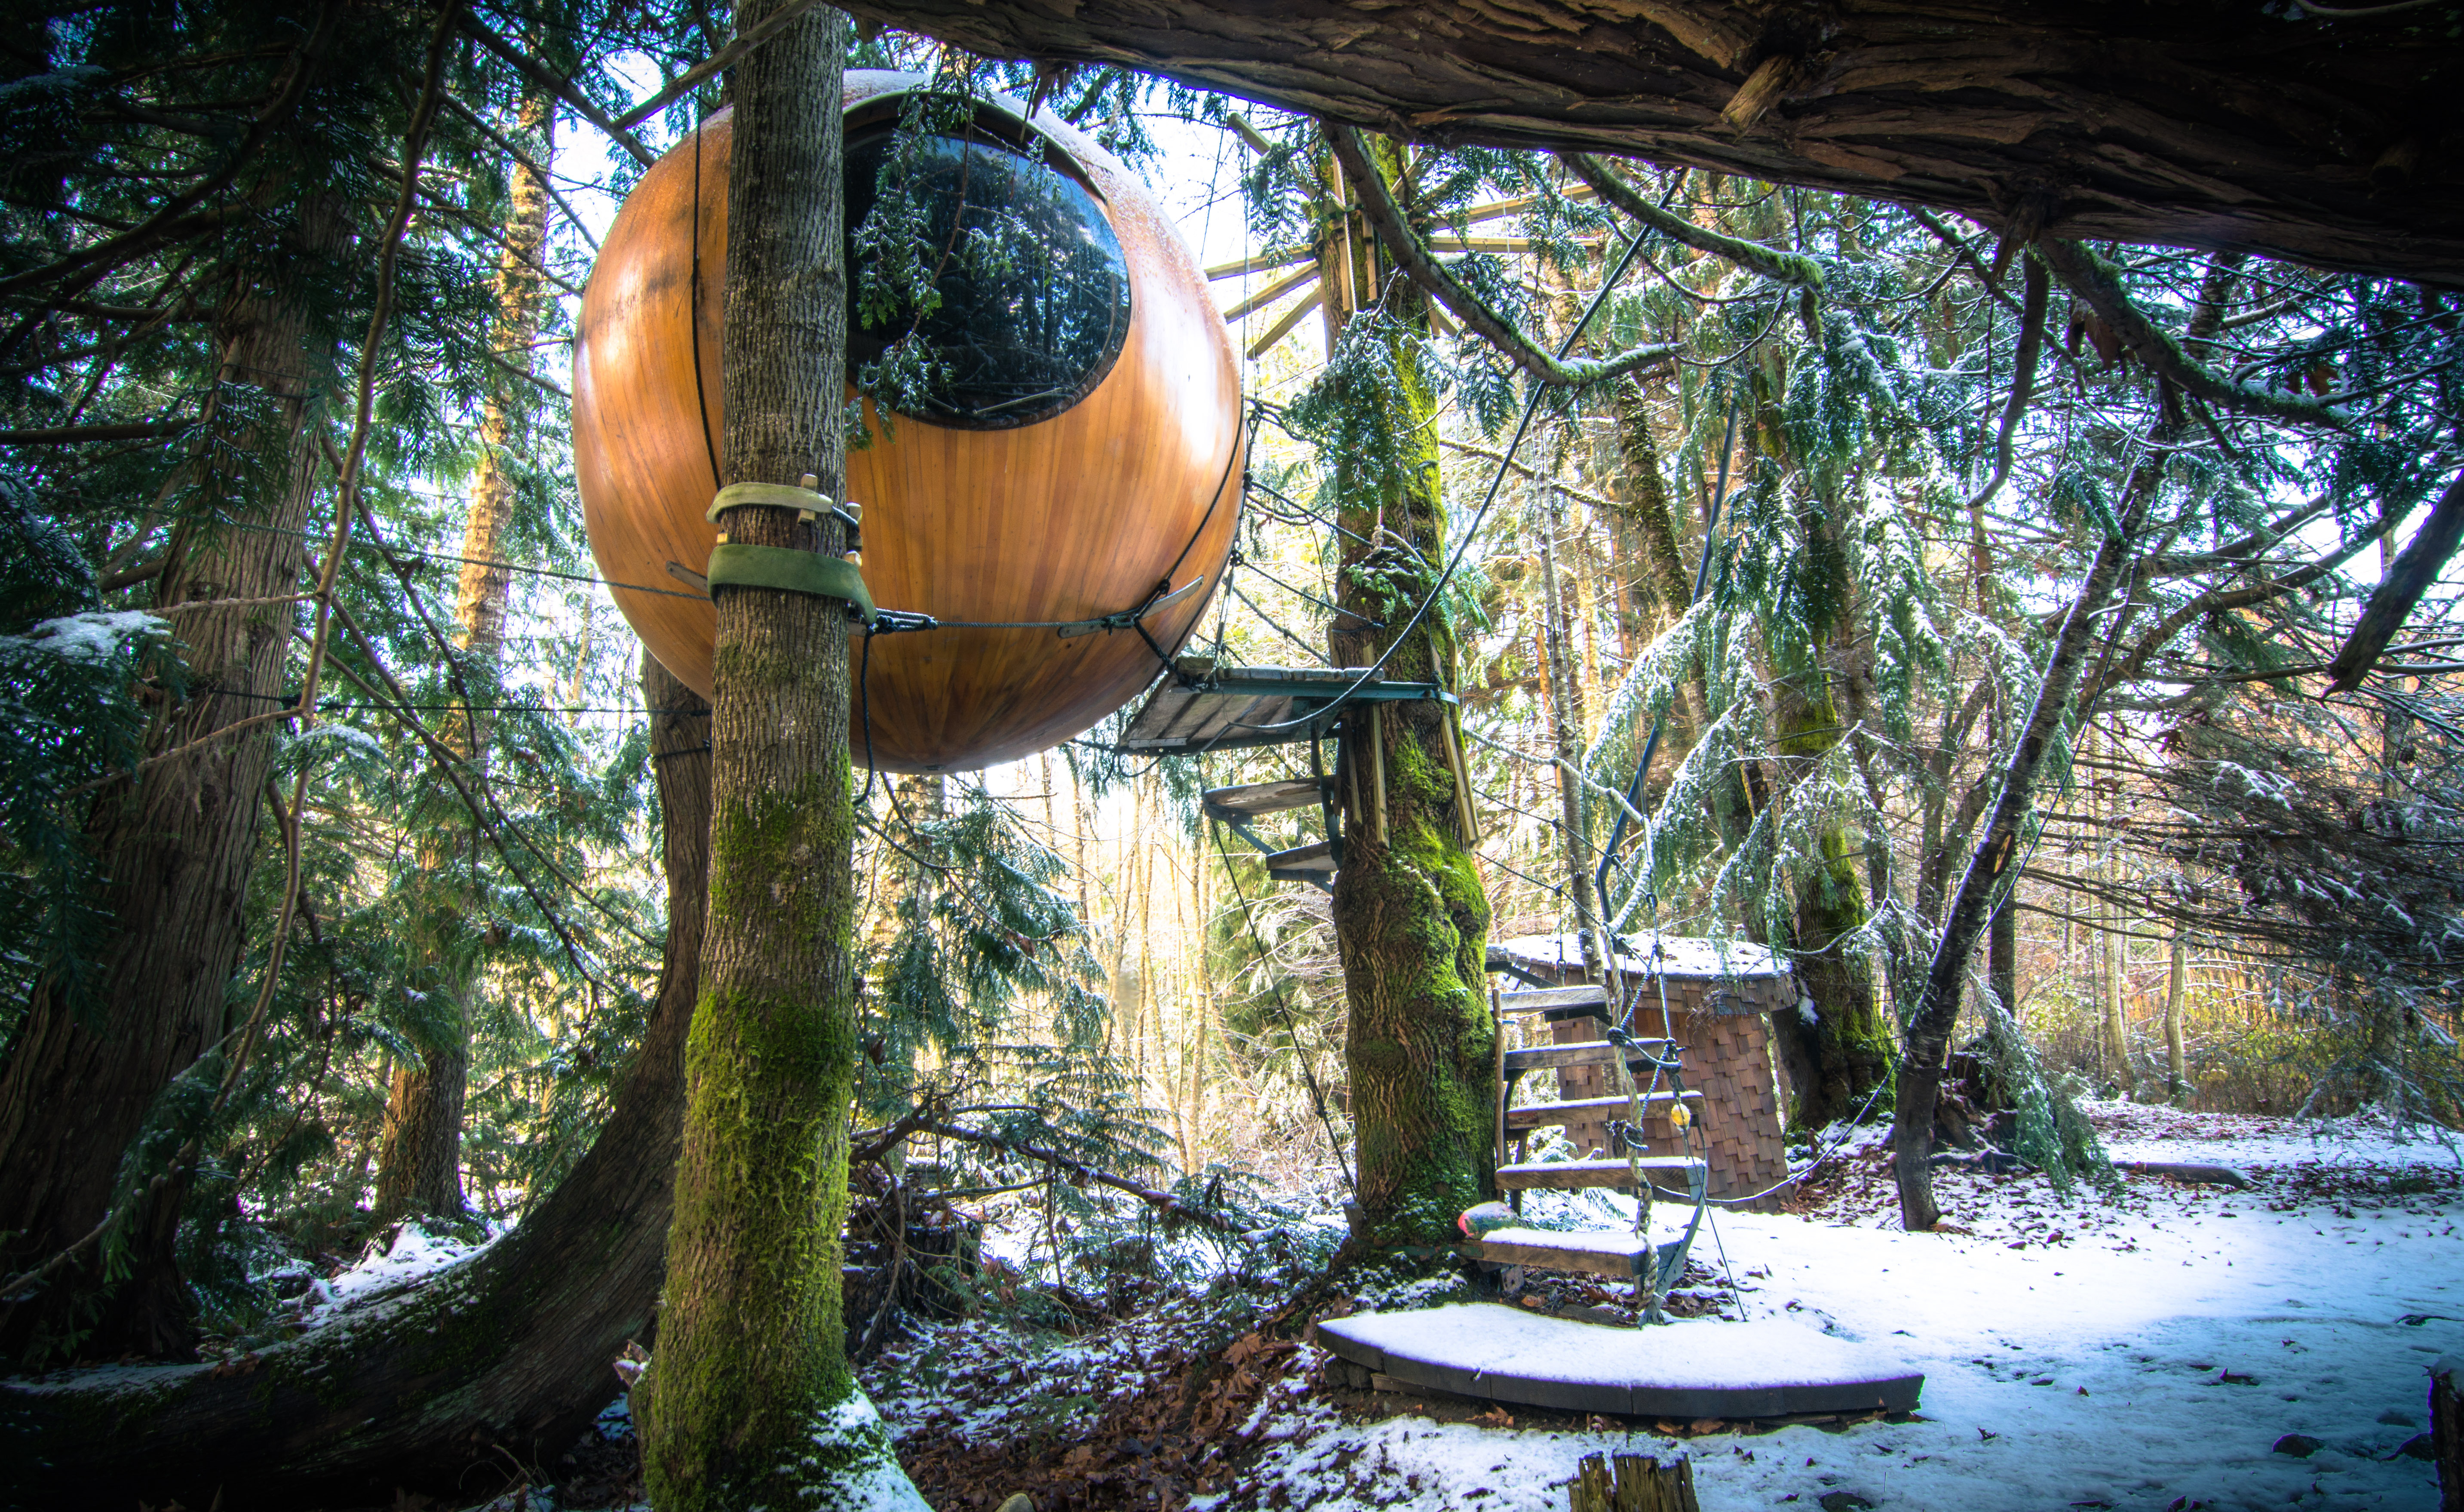 Free Spirit Spheres (Photo credit: Kerry Maguire)